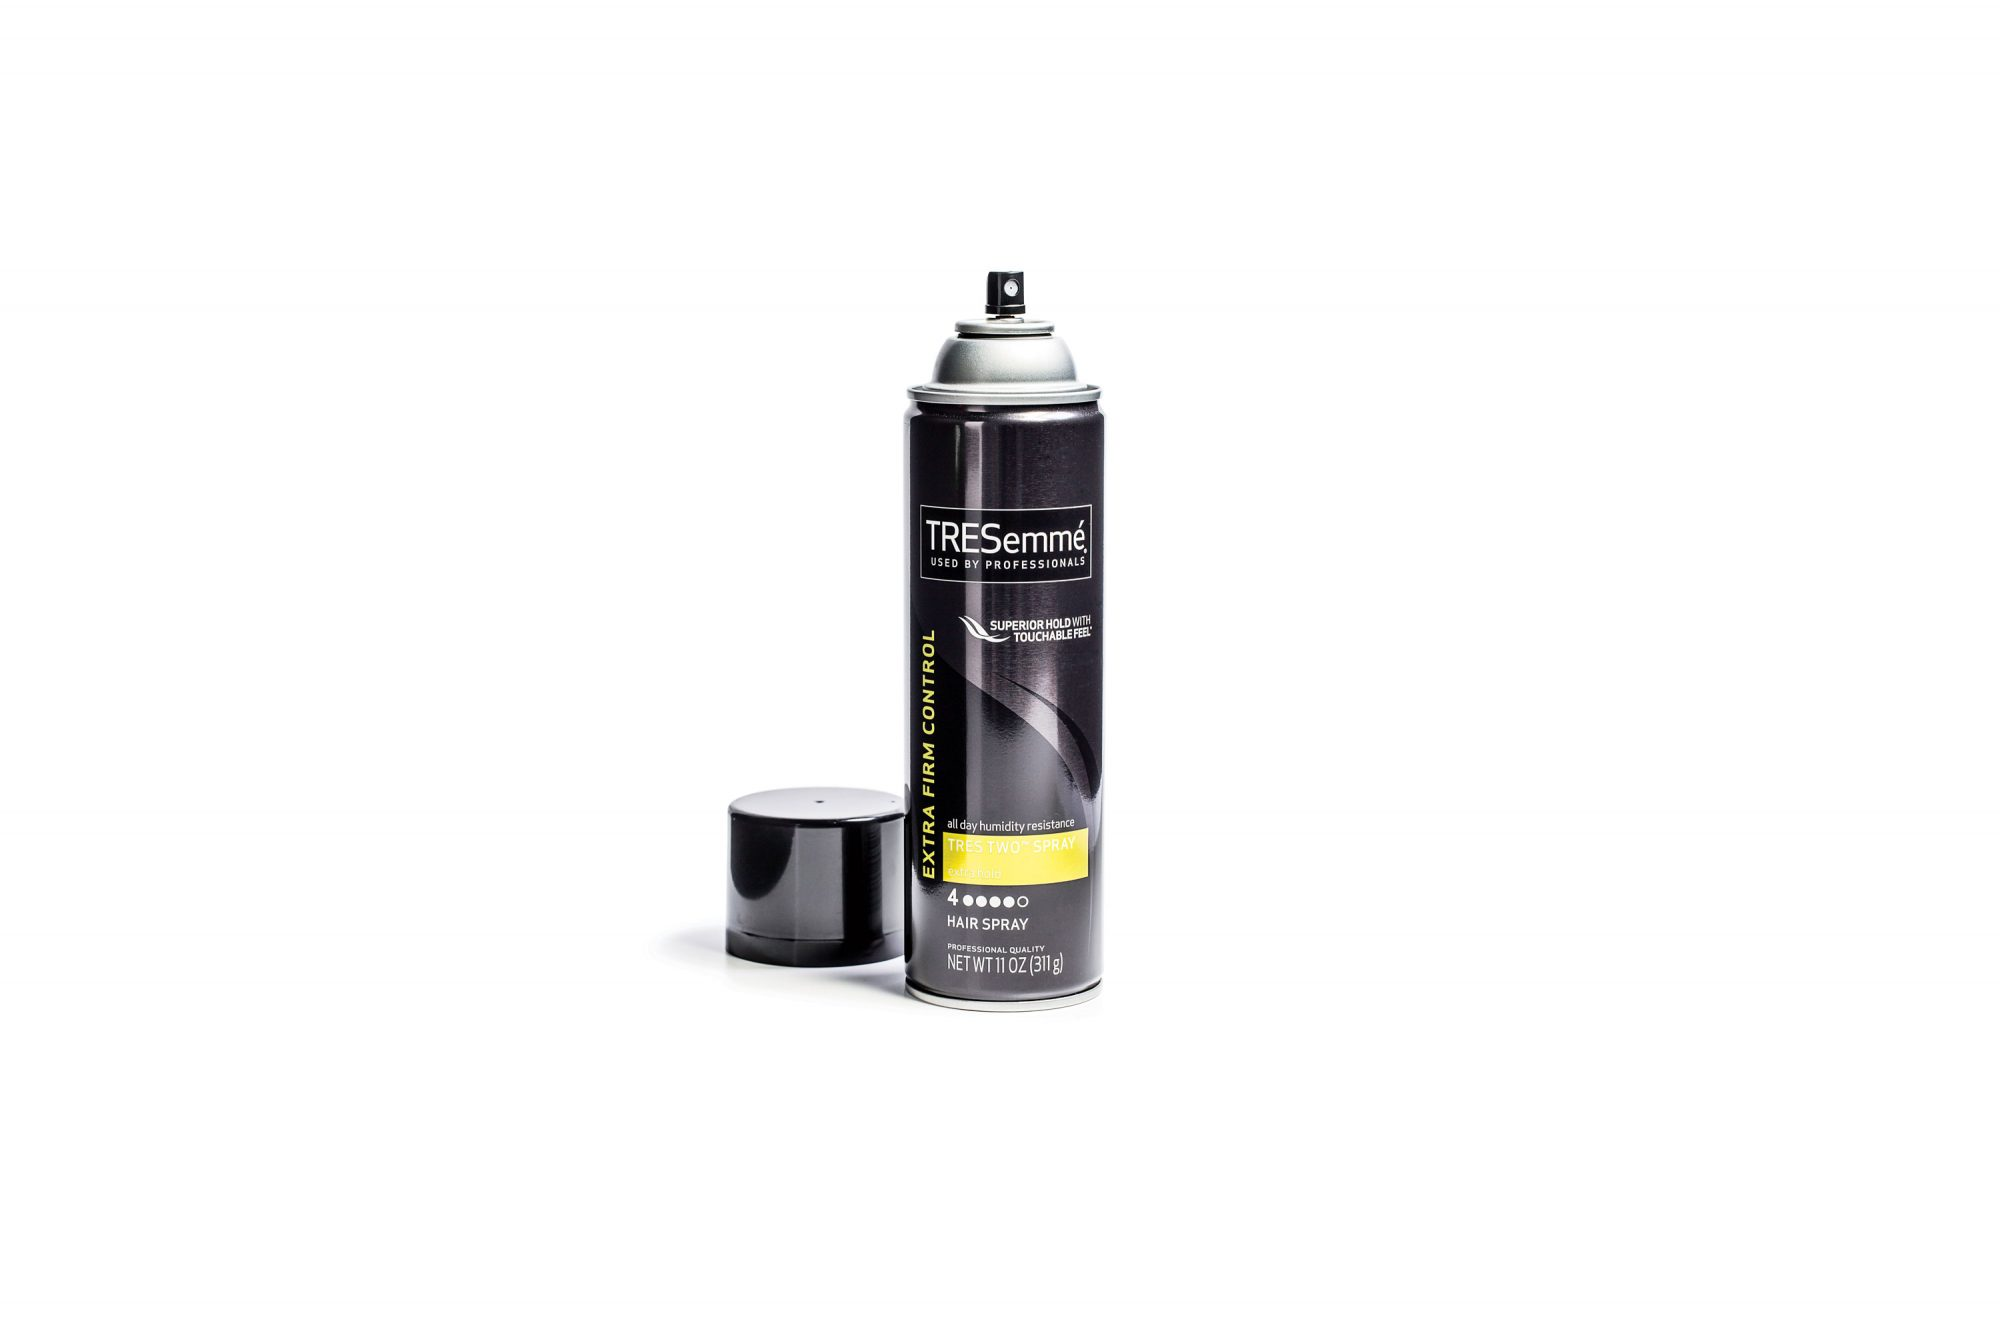 Tresemme Hair Spray